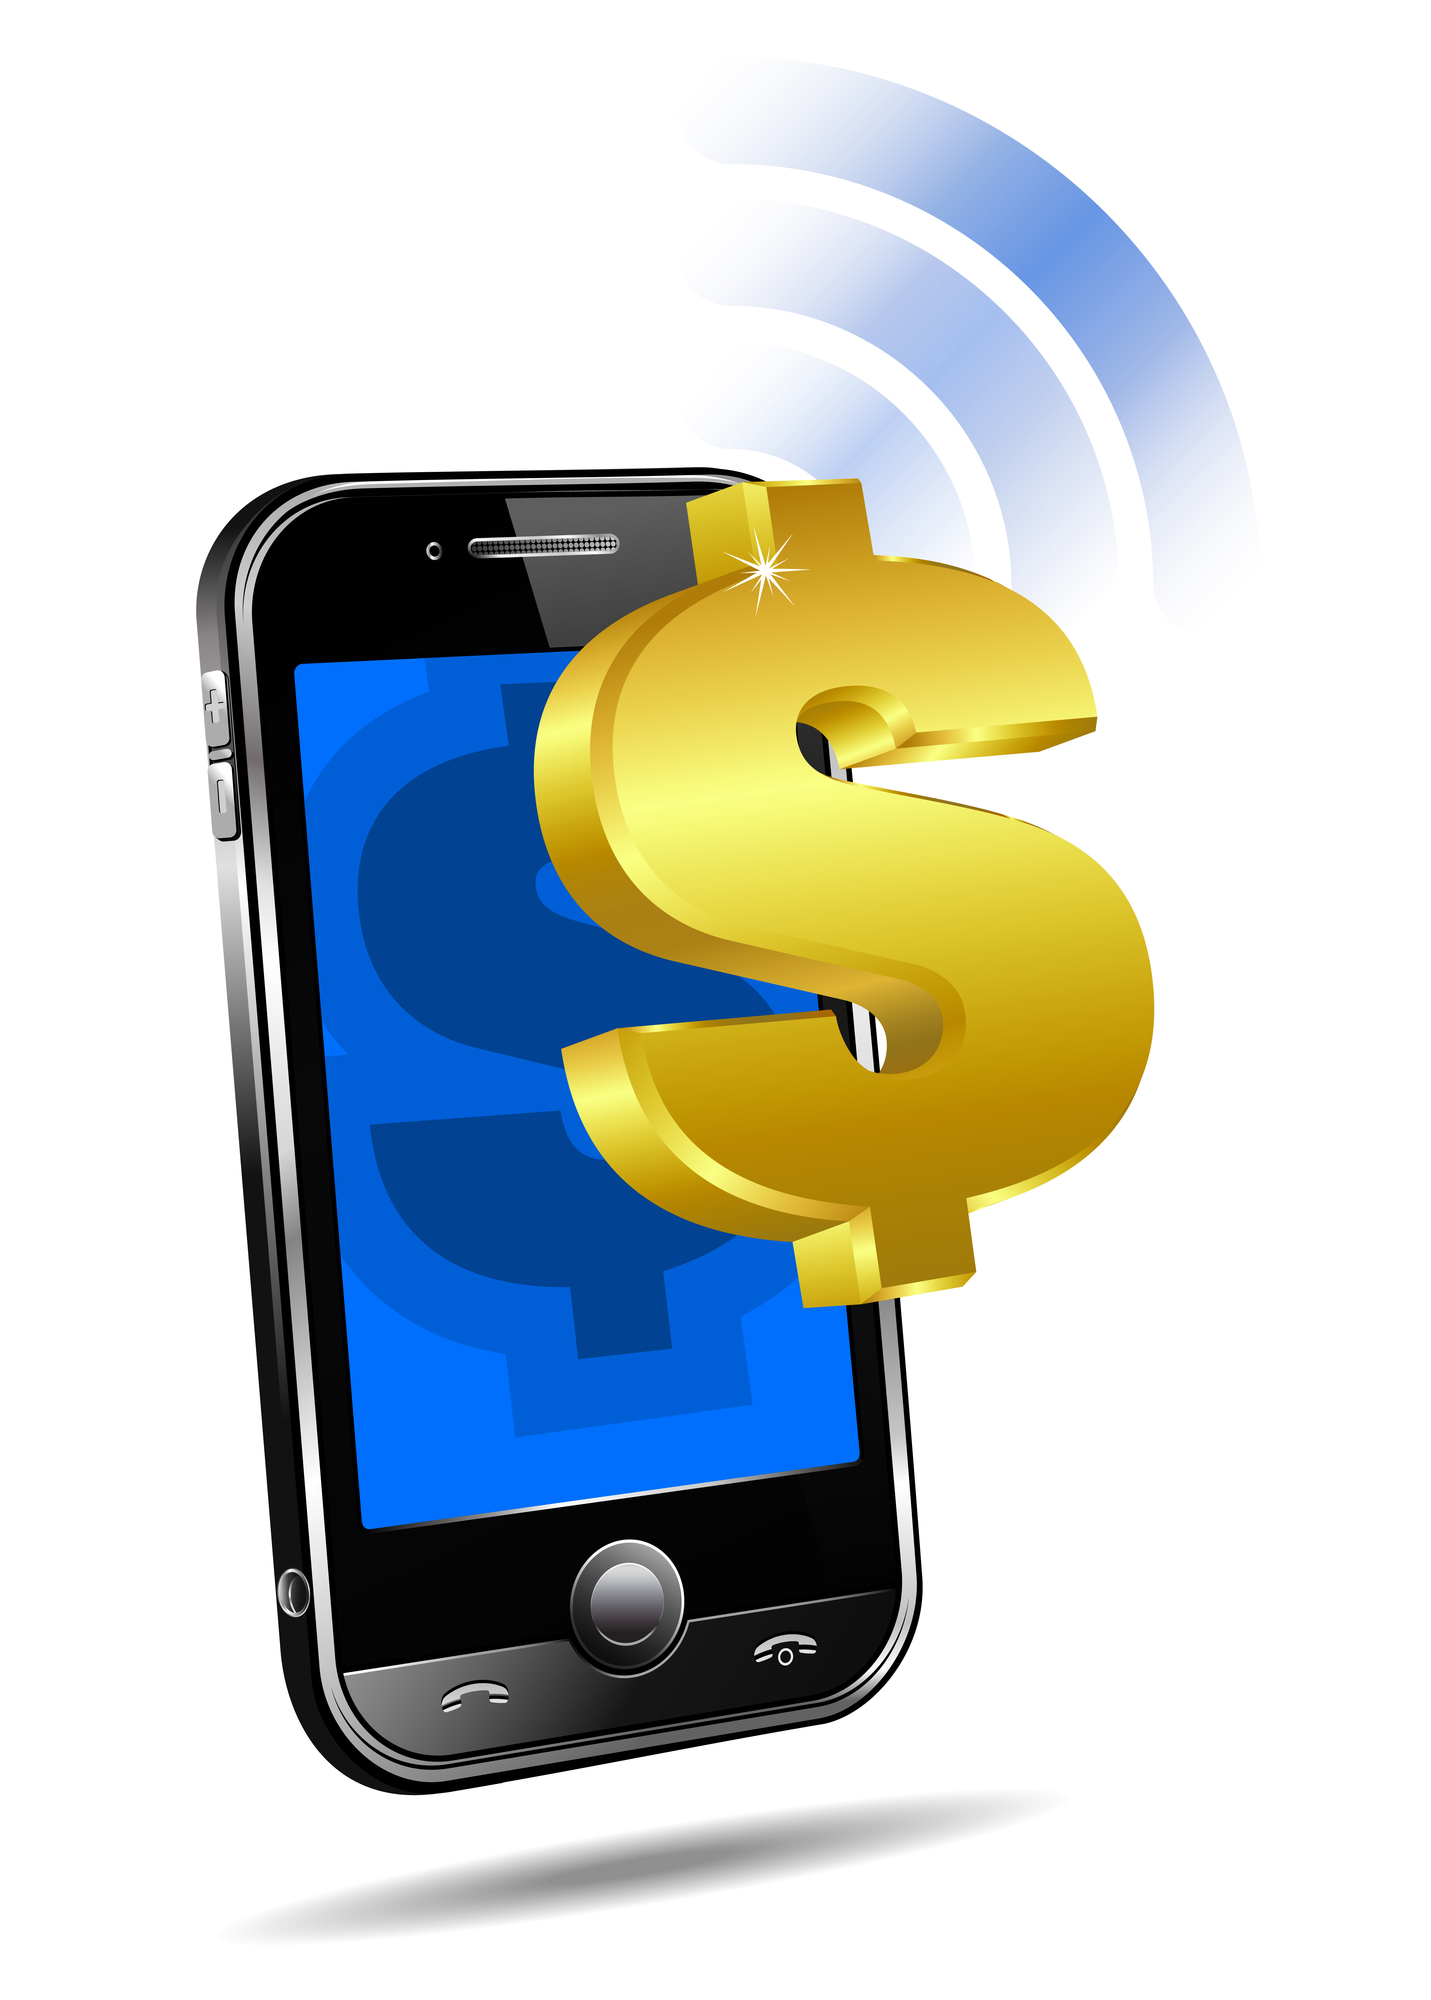 Mobile tariff and payment concept with money symbol